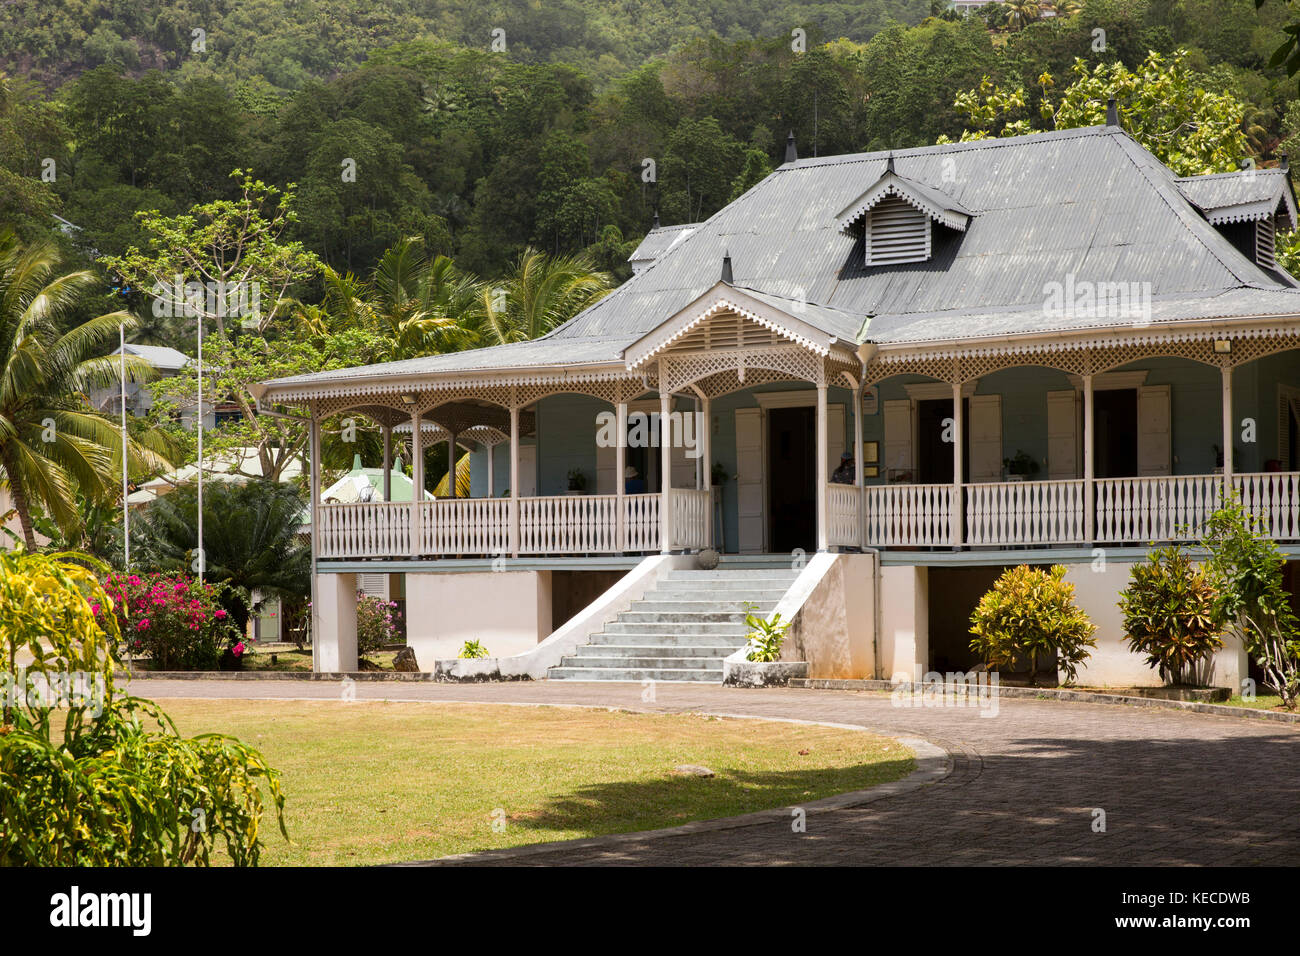 The Seychelles, Mahe, Anse aux Pins, St Roche Au Cap, Craft Village, Domaine Val des Pres Estate House - Stock Image